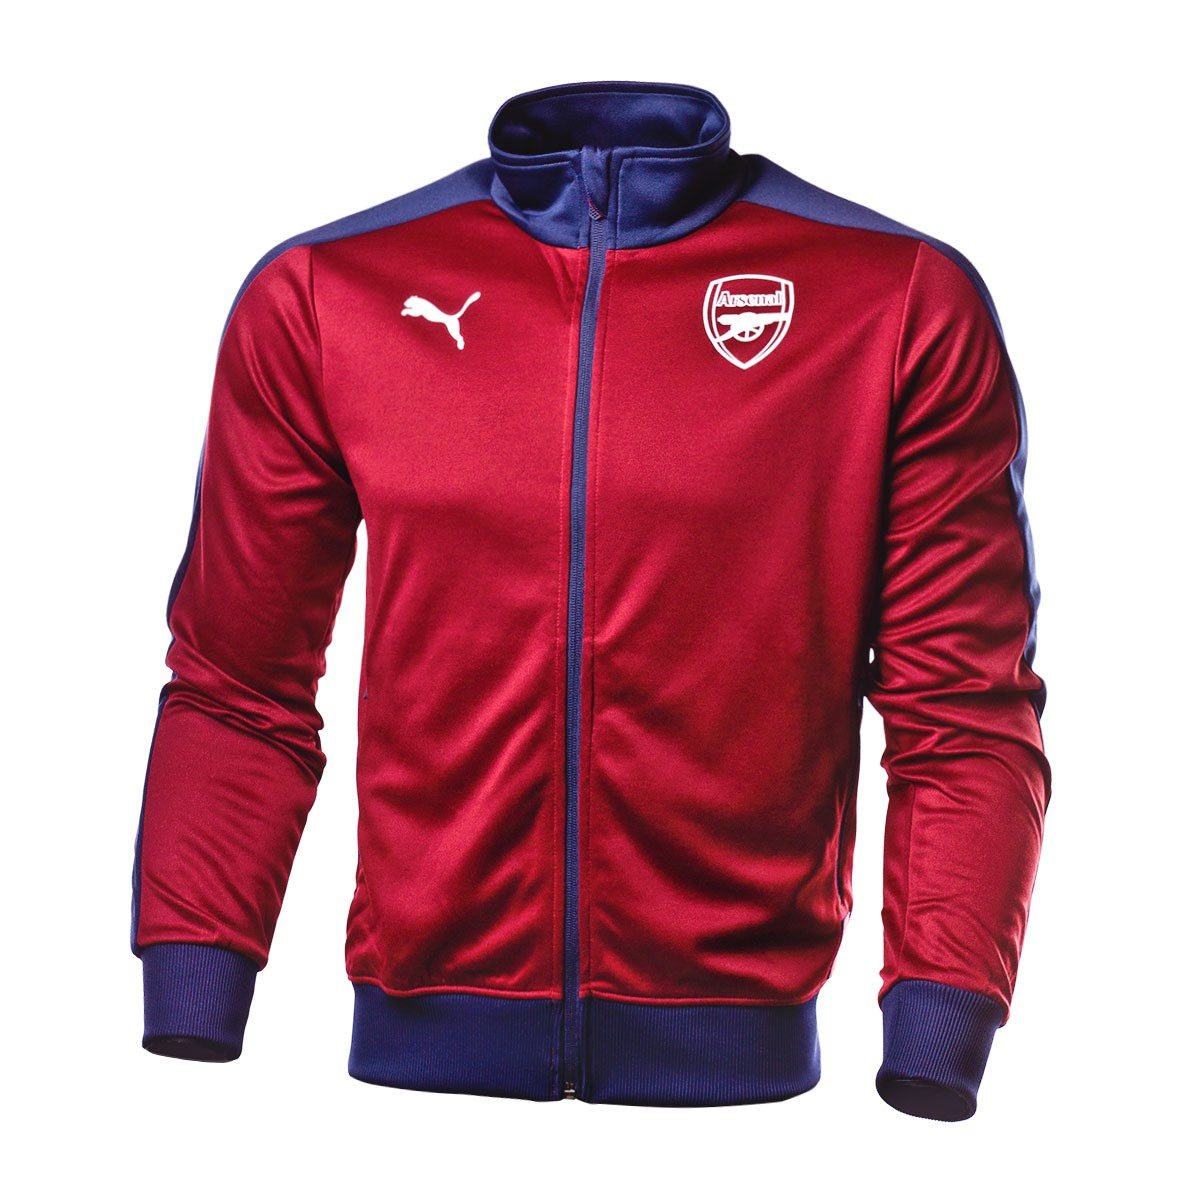 2579044c7d39 Jacket Puma Arsenal FC Fan 2018-2019 Pomegranate-Peacoat - Tienda de fútbol  Fútbol Emotion